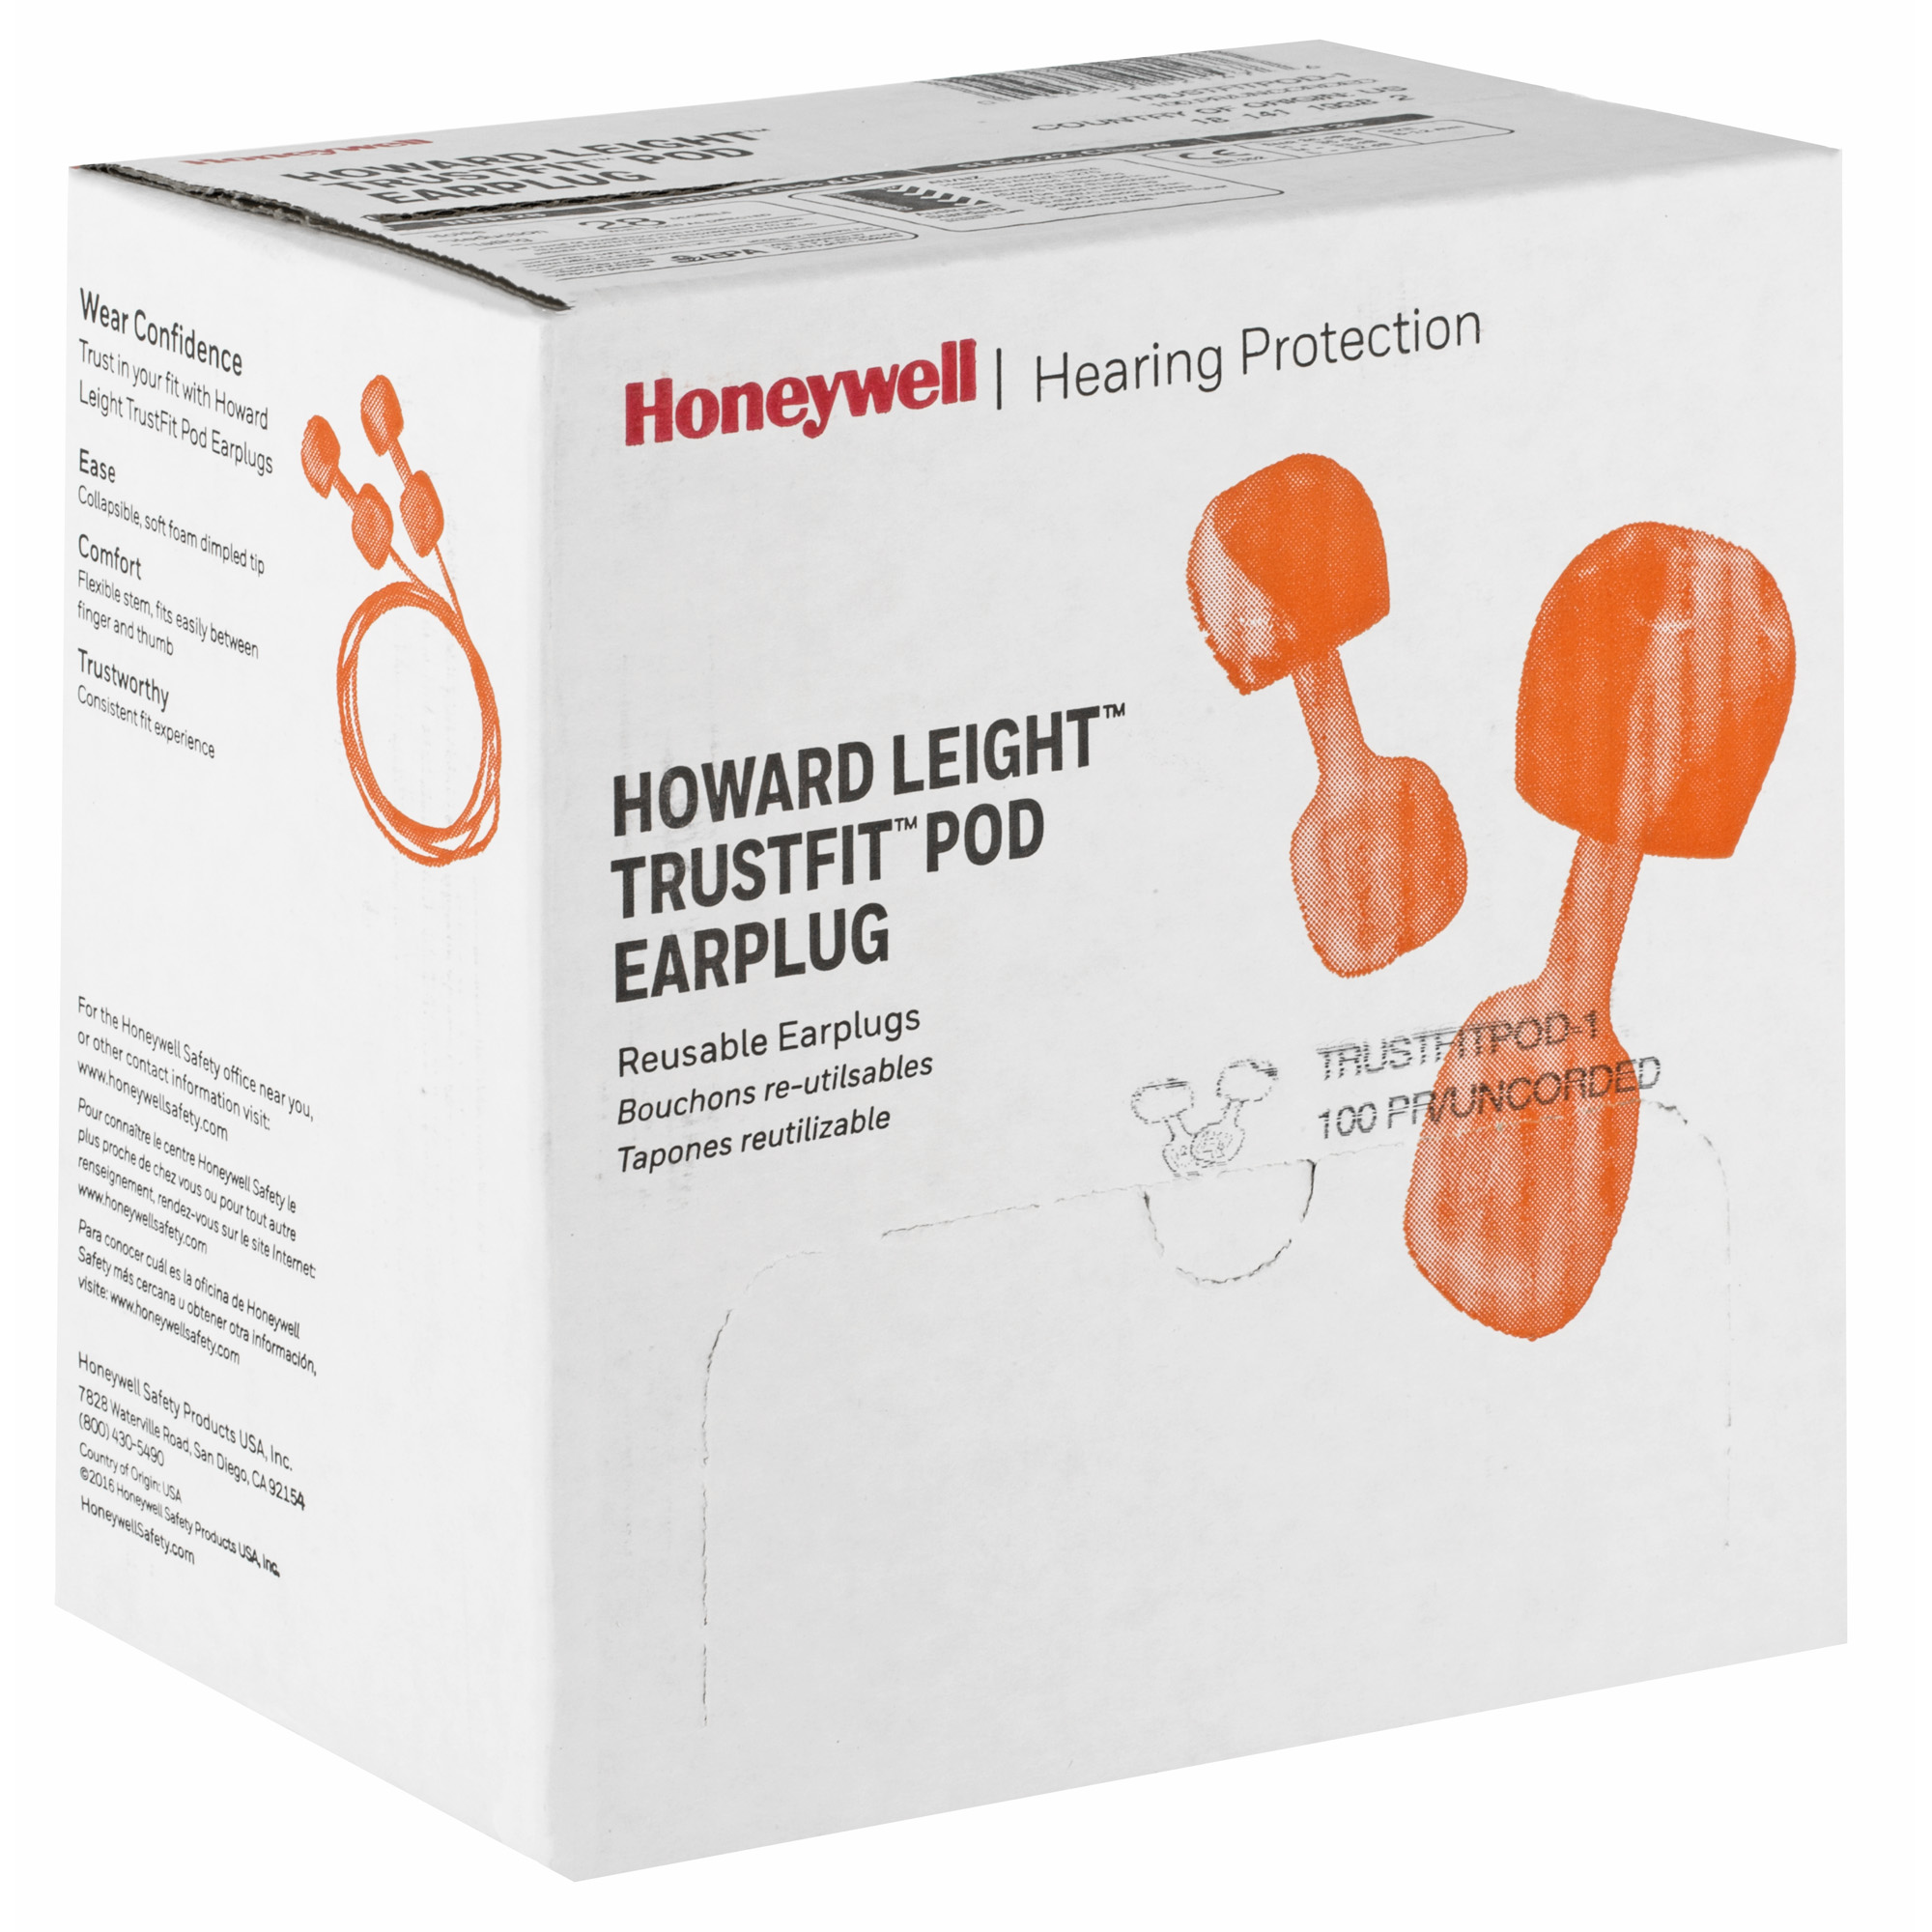 """Trustfit Pod Uncorded Multiple-Use Earplugs utilize soft foam with a dimpled tip that collapses and can be easily pushed into the ear without the need to roll-down. The use of a contoured paddle allows for a natural fit between the finger and thumb"""" while a flexible stem material gently pushes the dimpled foam into the narrowing ear canal."""